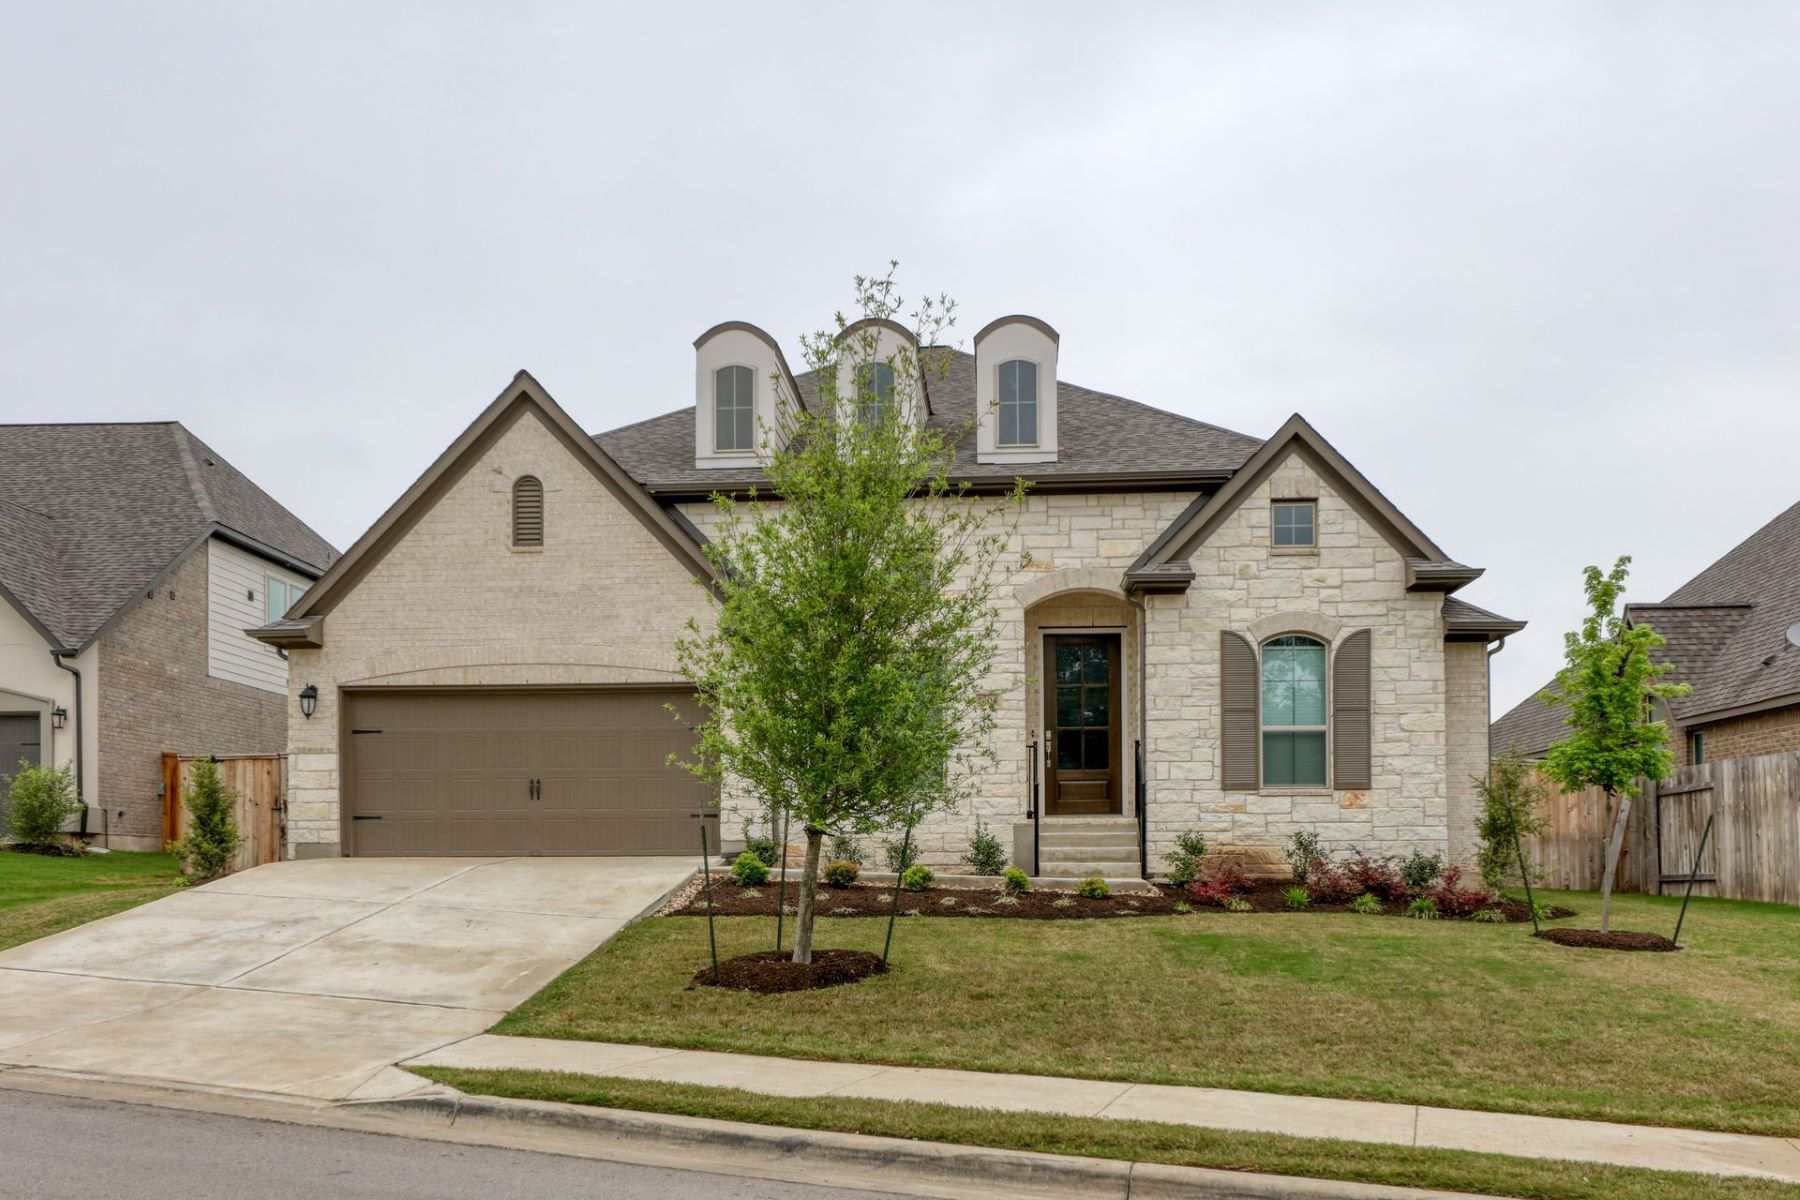 Single Family Homes for Sale at 2004 Rabbit Creek Drive, Georgetown, TX 78626 2004 Rabbit Creek Drive Georgetown, Texas 78626 United States